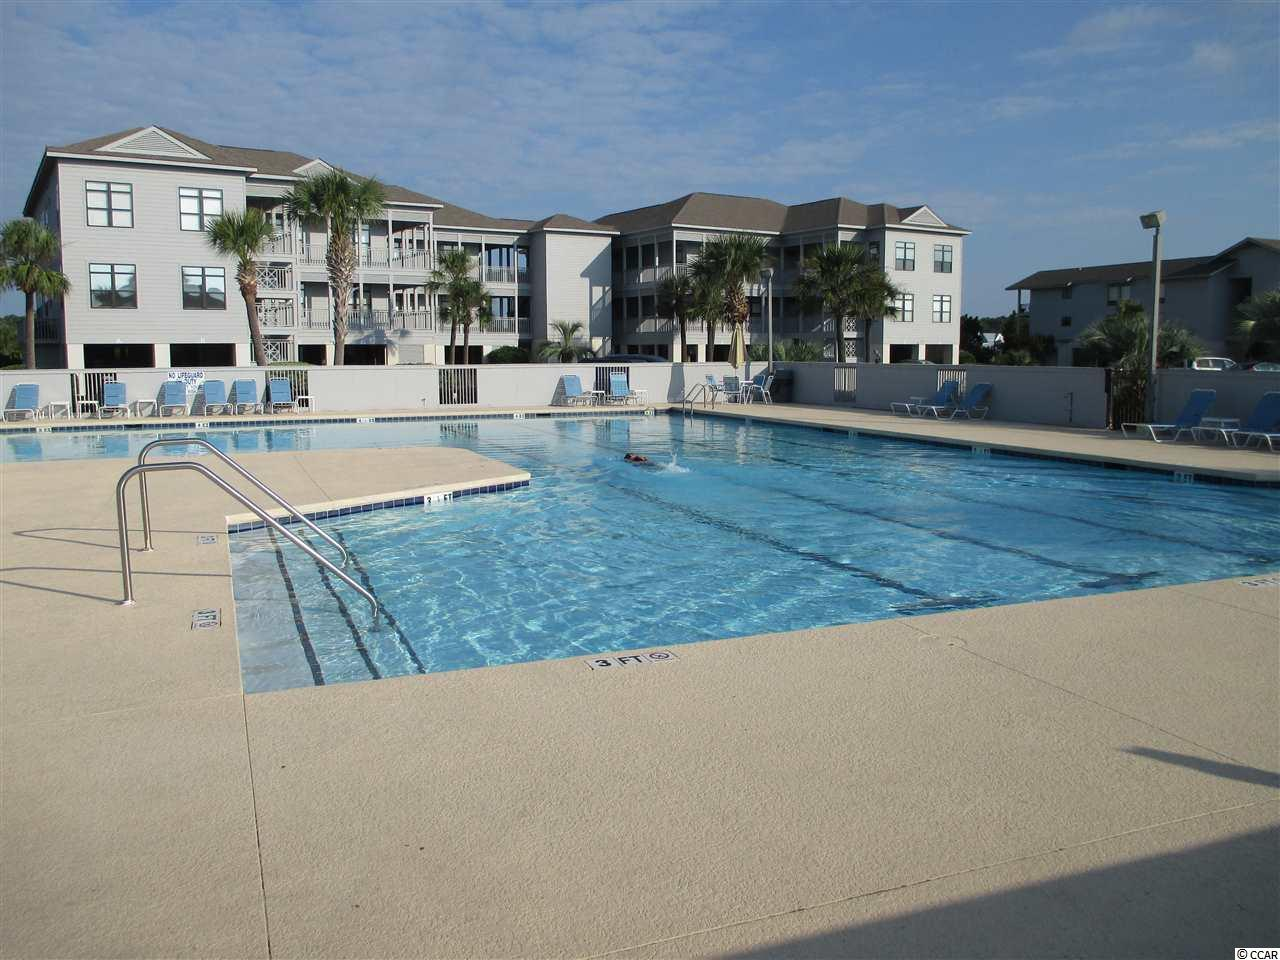 Inlet Point Villas - Litchfield  condo now for sale